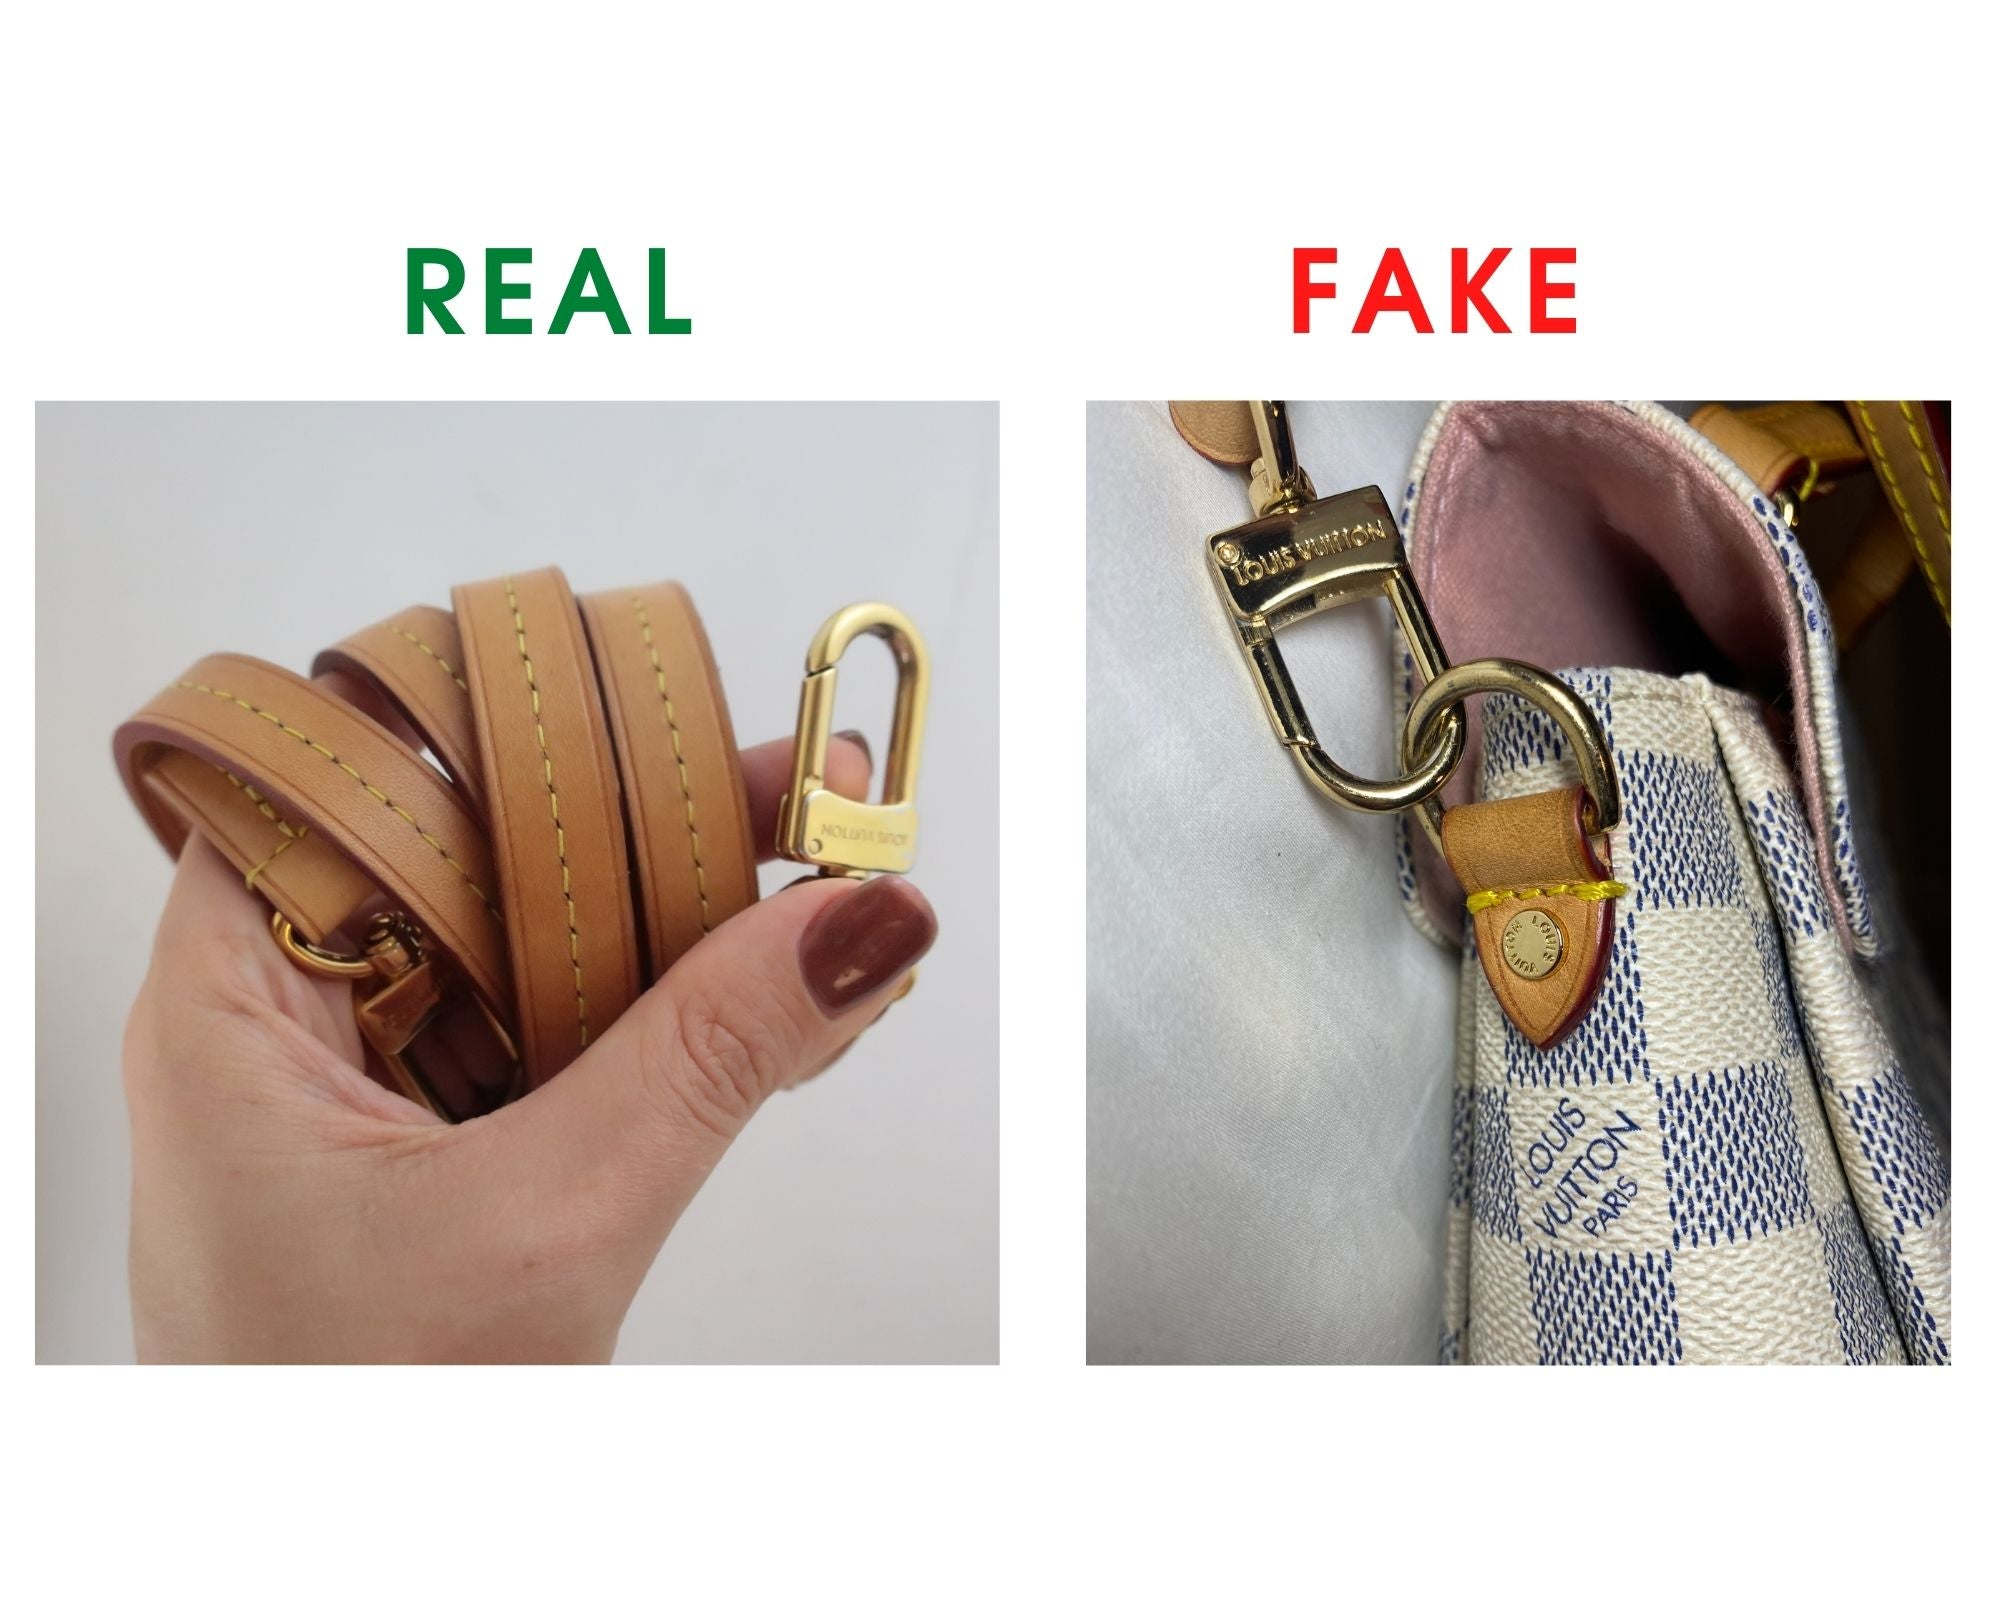 Louis Vuitton Croisette Bag Review and Real vs Fake Comparison (With Real Photos) shoulder strap buckle